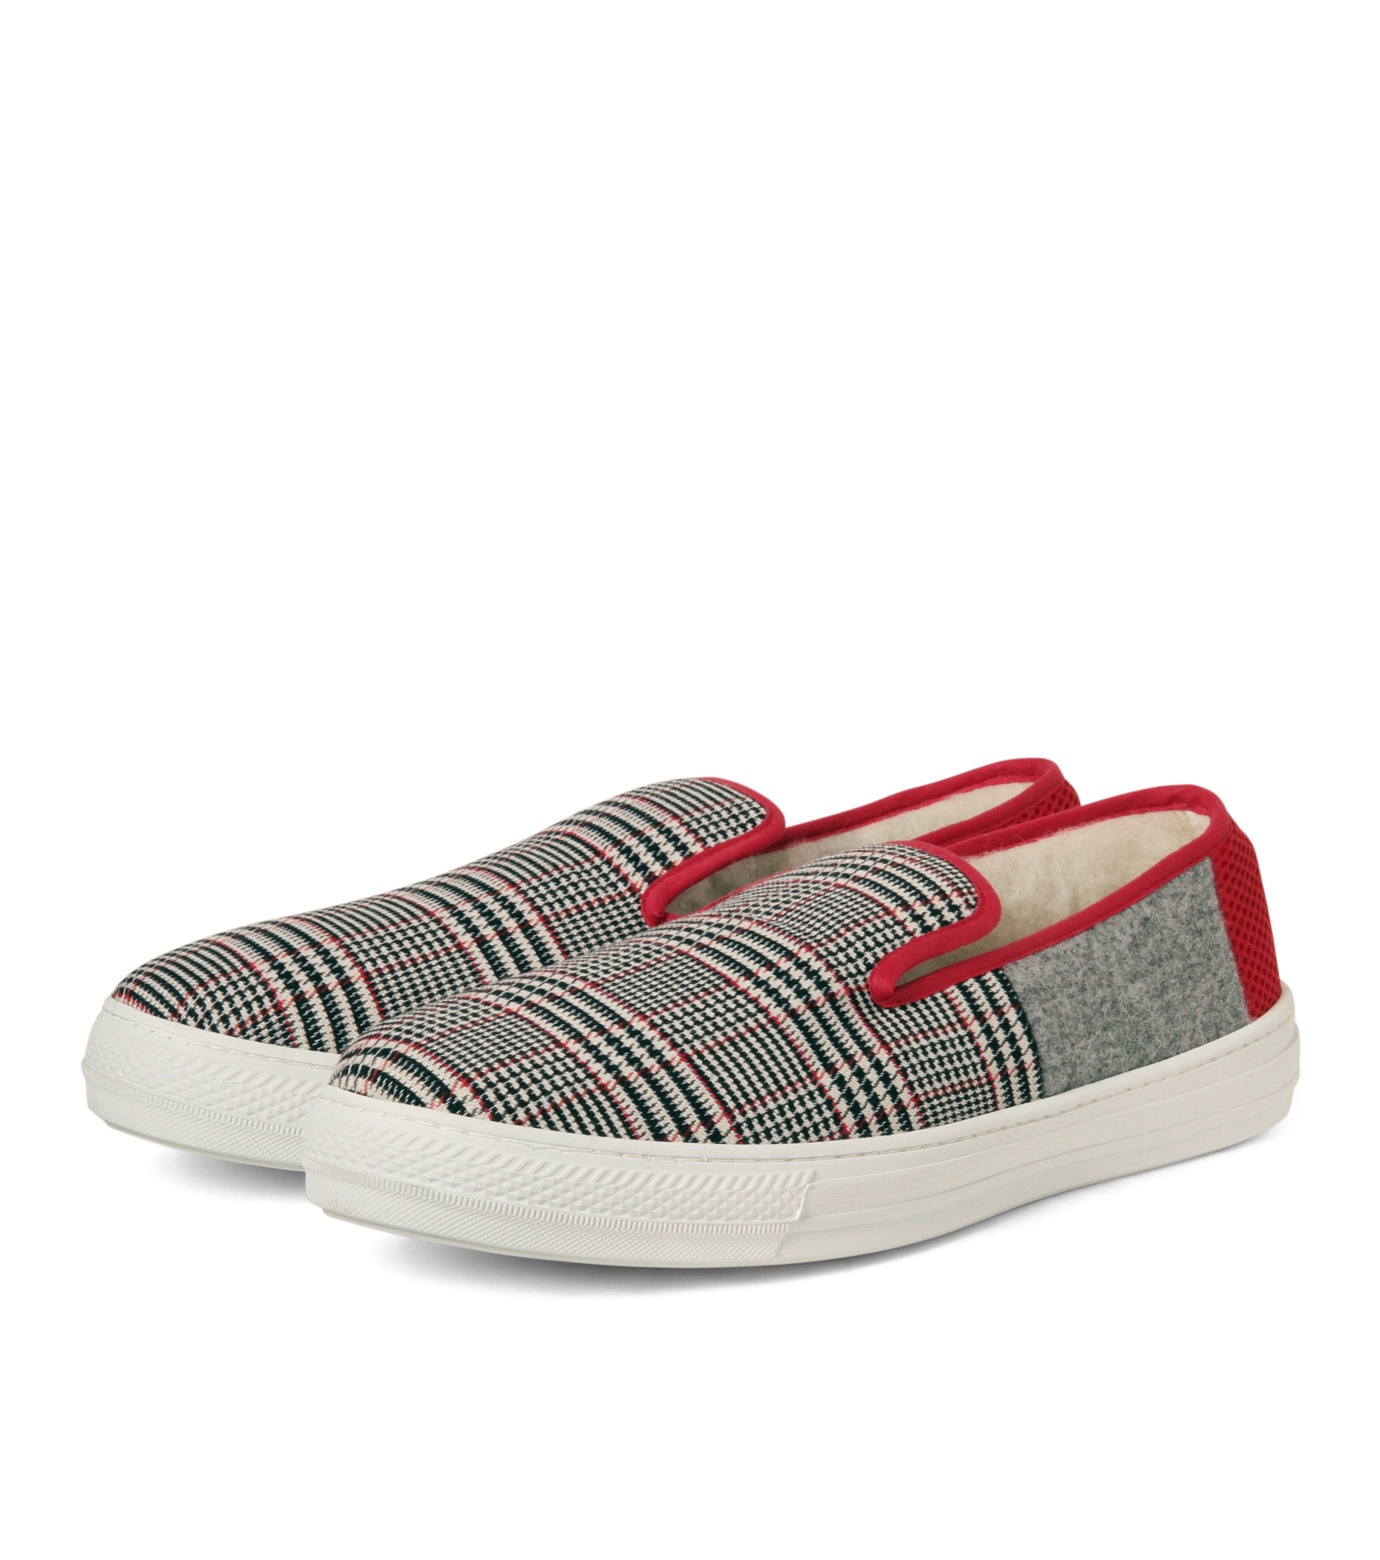 TAISE by SOUSTS(TAISE by SOUSTS)のANATOLE Grey/Red-GRAY(スニーカー/sneaker)-ANATOLE-11 拡大詳細画像4